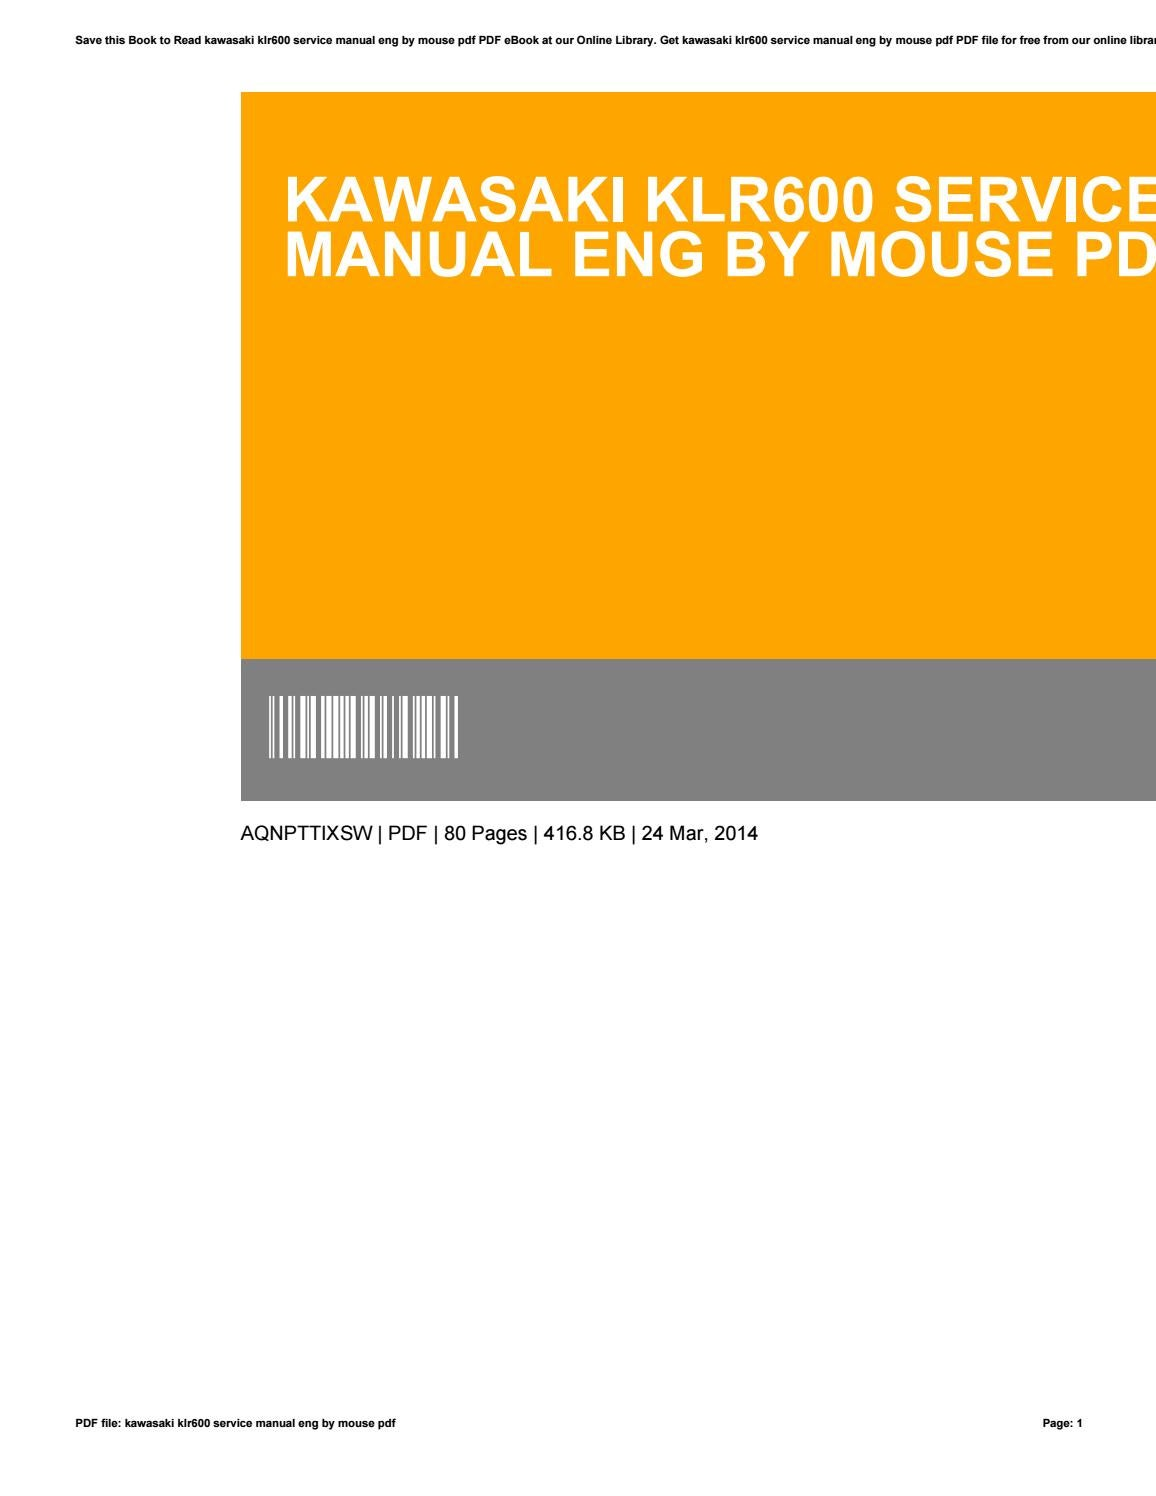 Kawasaki klr600 service manual eng by mouse pdf by CharlesChavez2740 - issuu